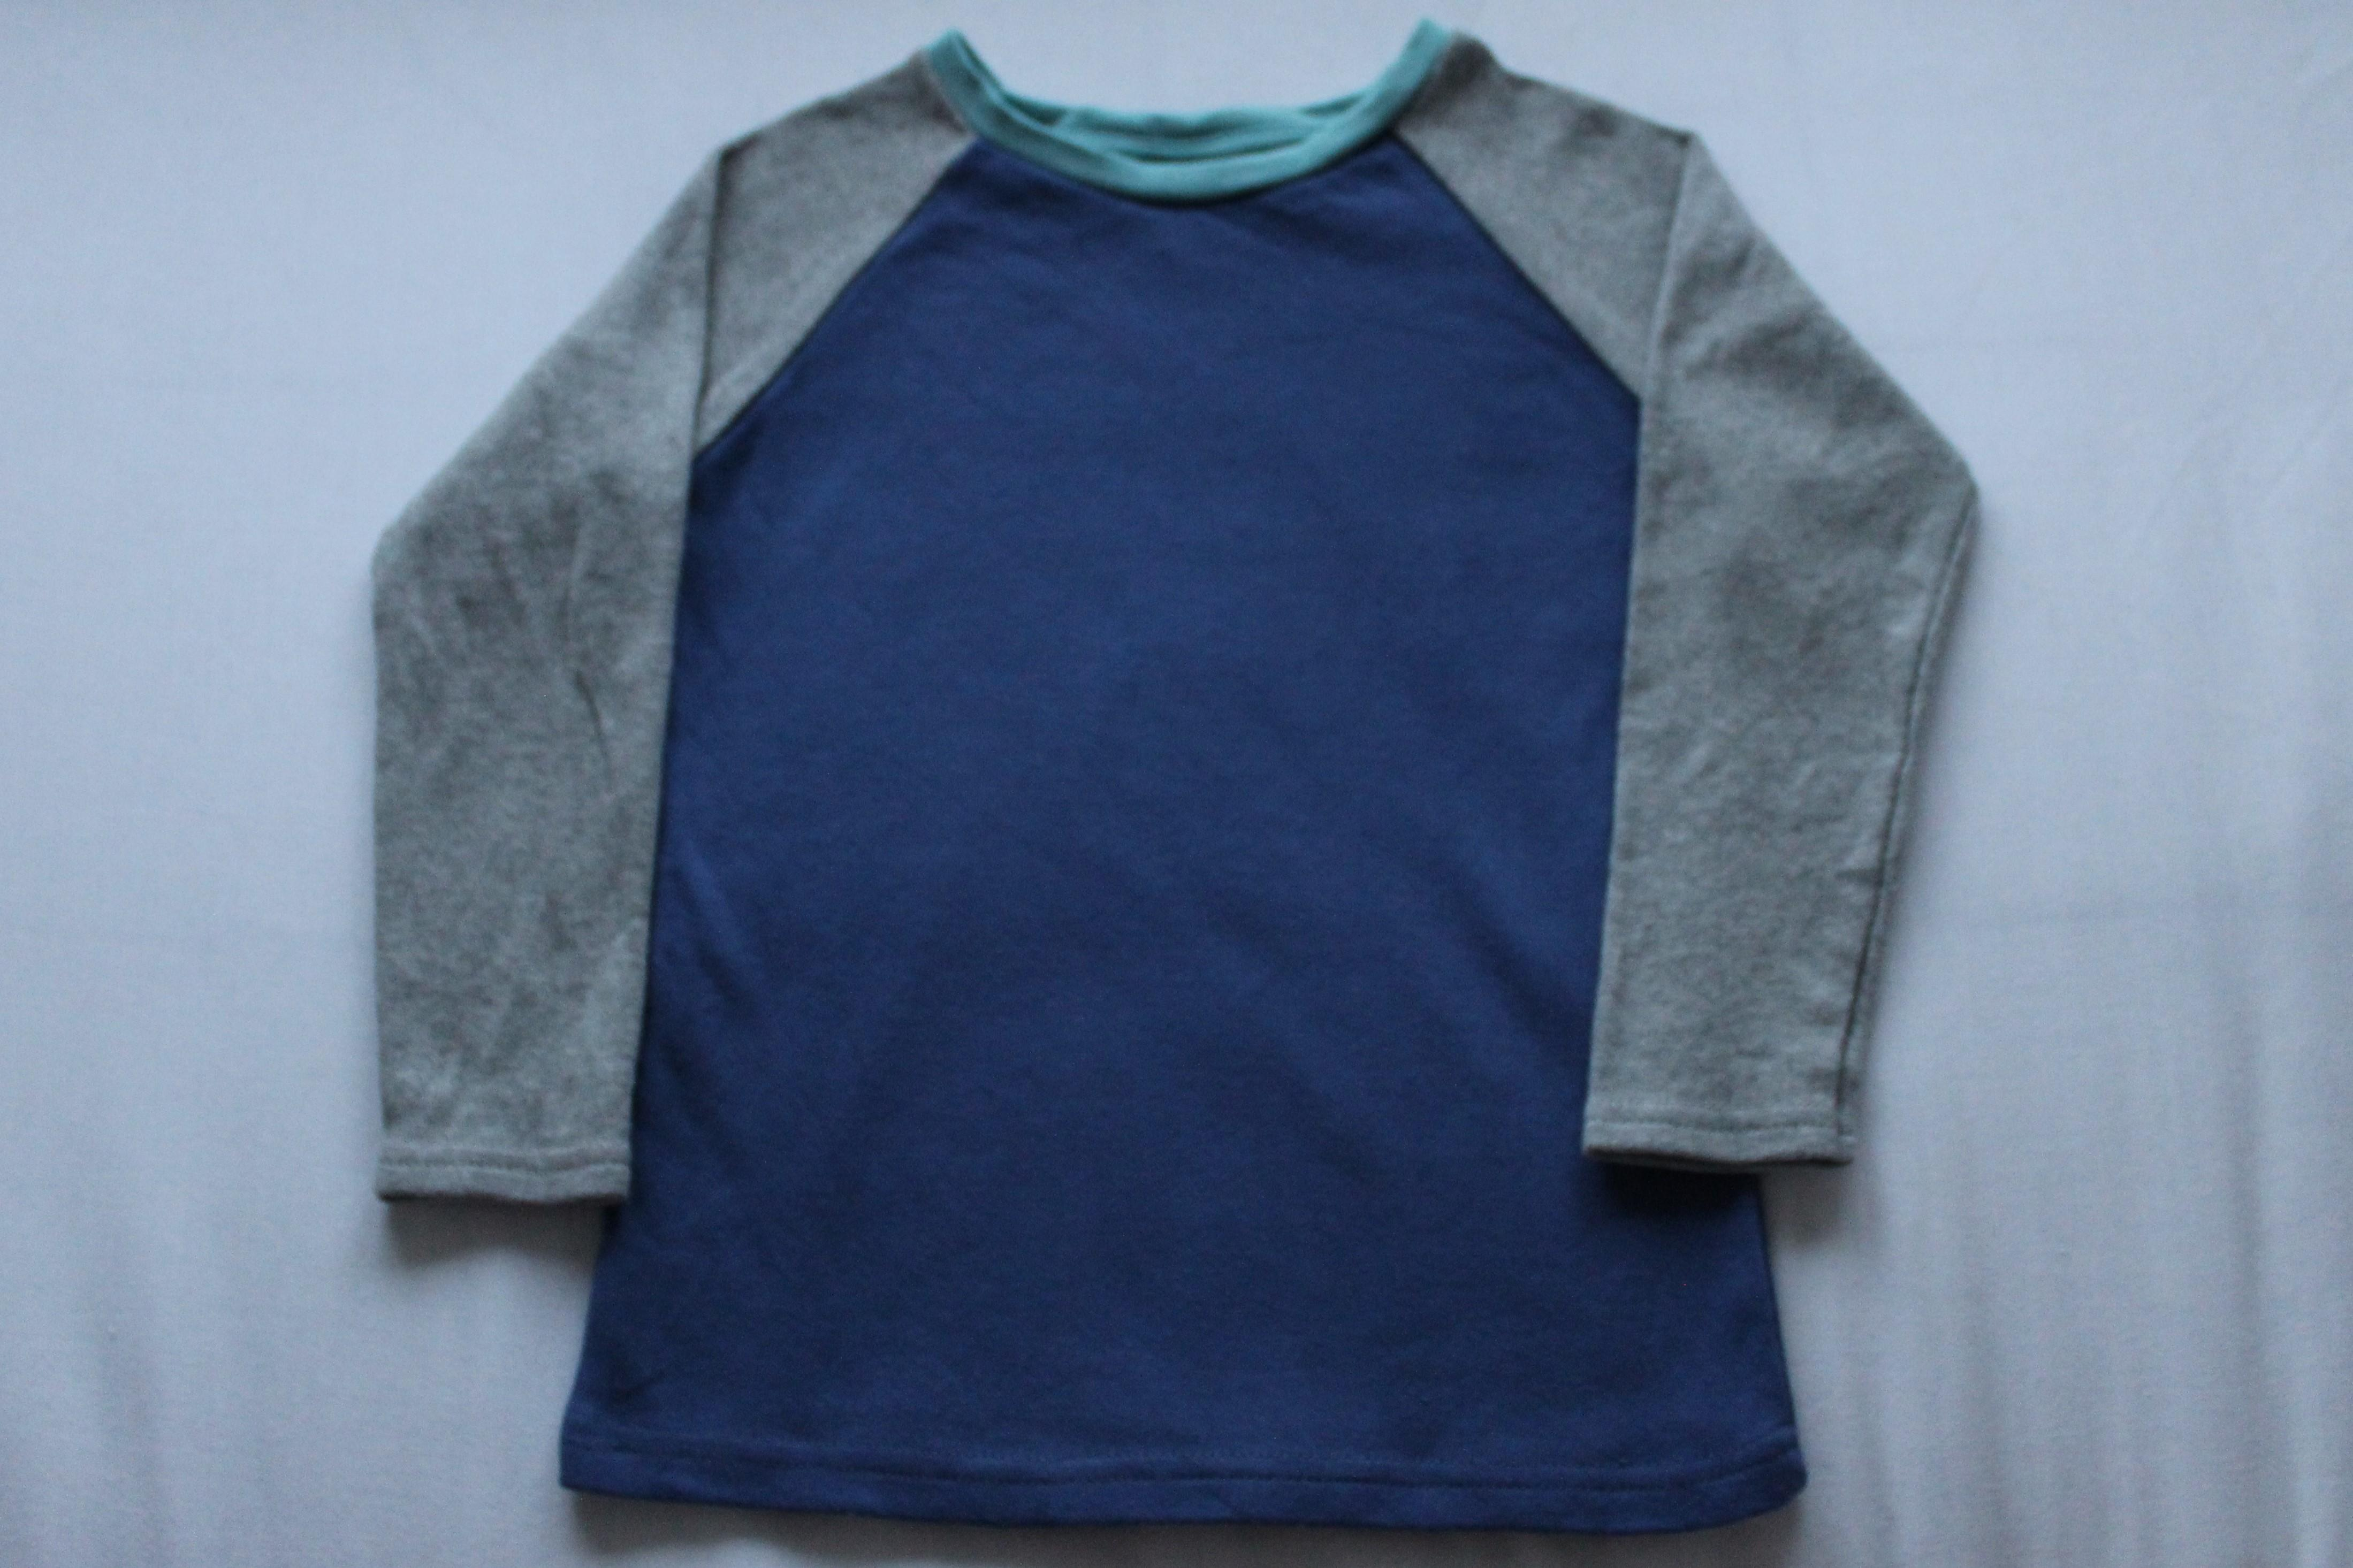 Sample sale KIT Clothing blue / grey long sleeve t-shirt 4-5 years